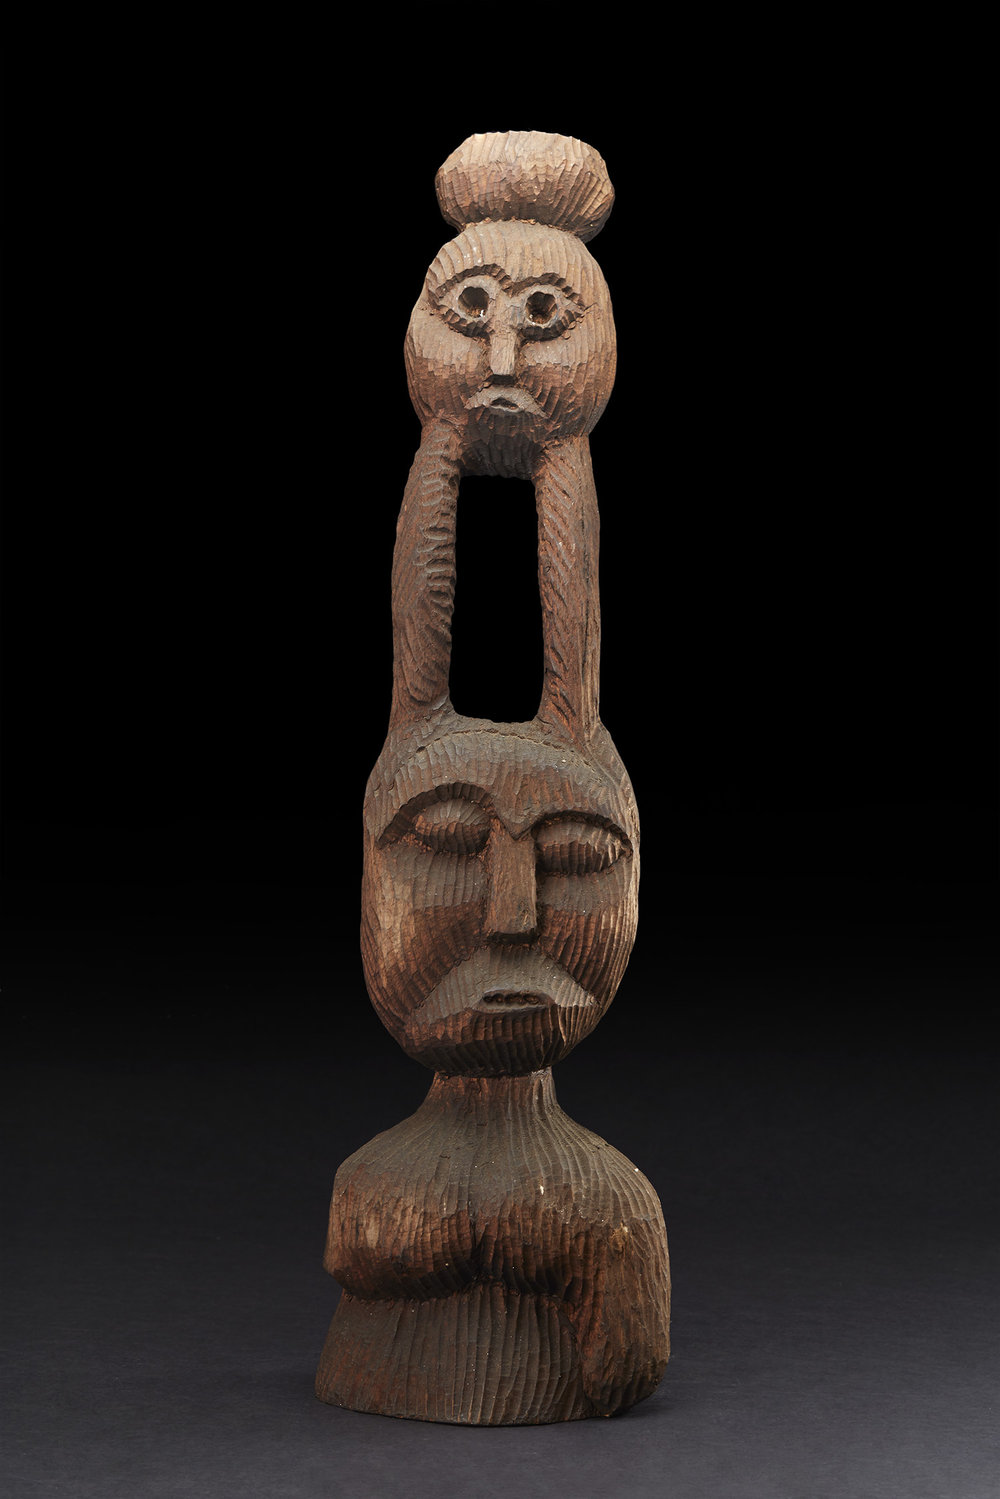 Errol Lloyd Atherton  Untitled (Figure)  , 1992 Cedar 32.5 x 9 x 8 inches 82.6 x 22.9 x 20.3 cm LAt 29